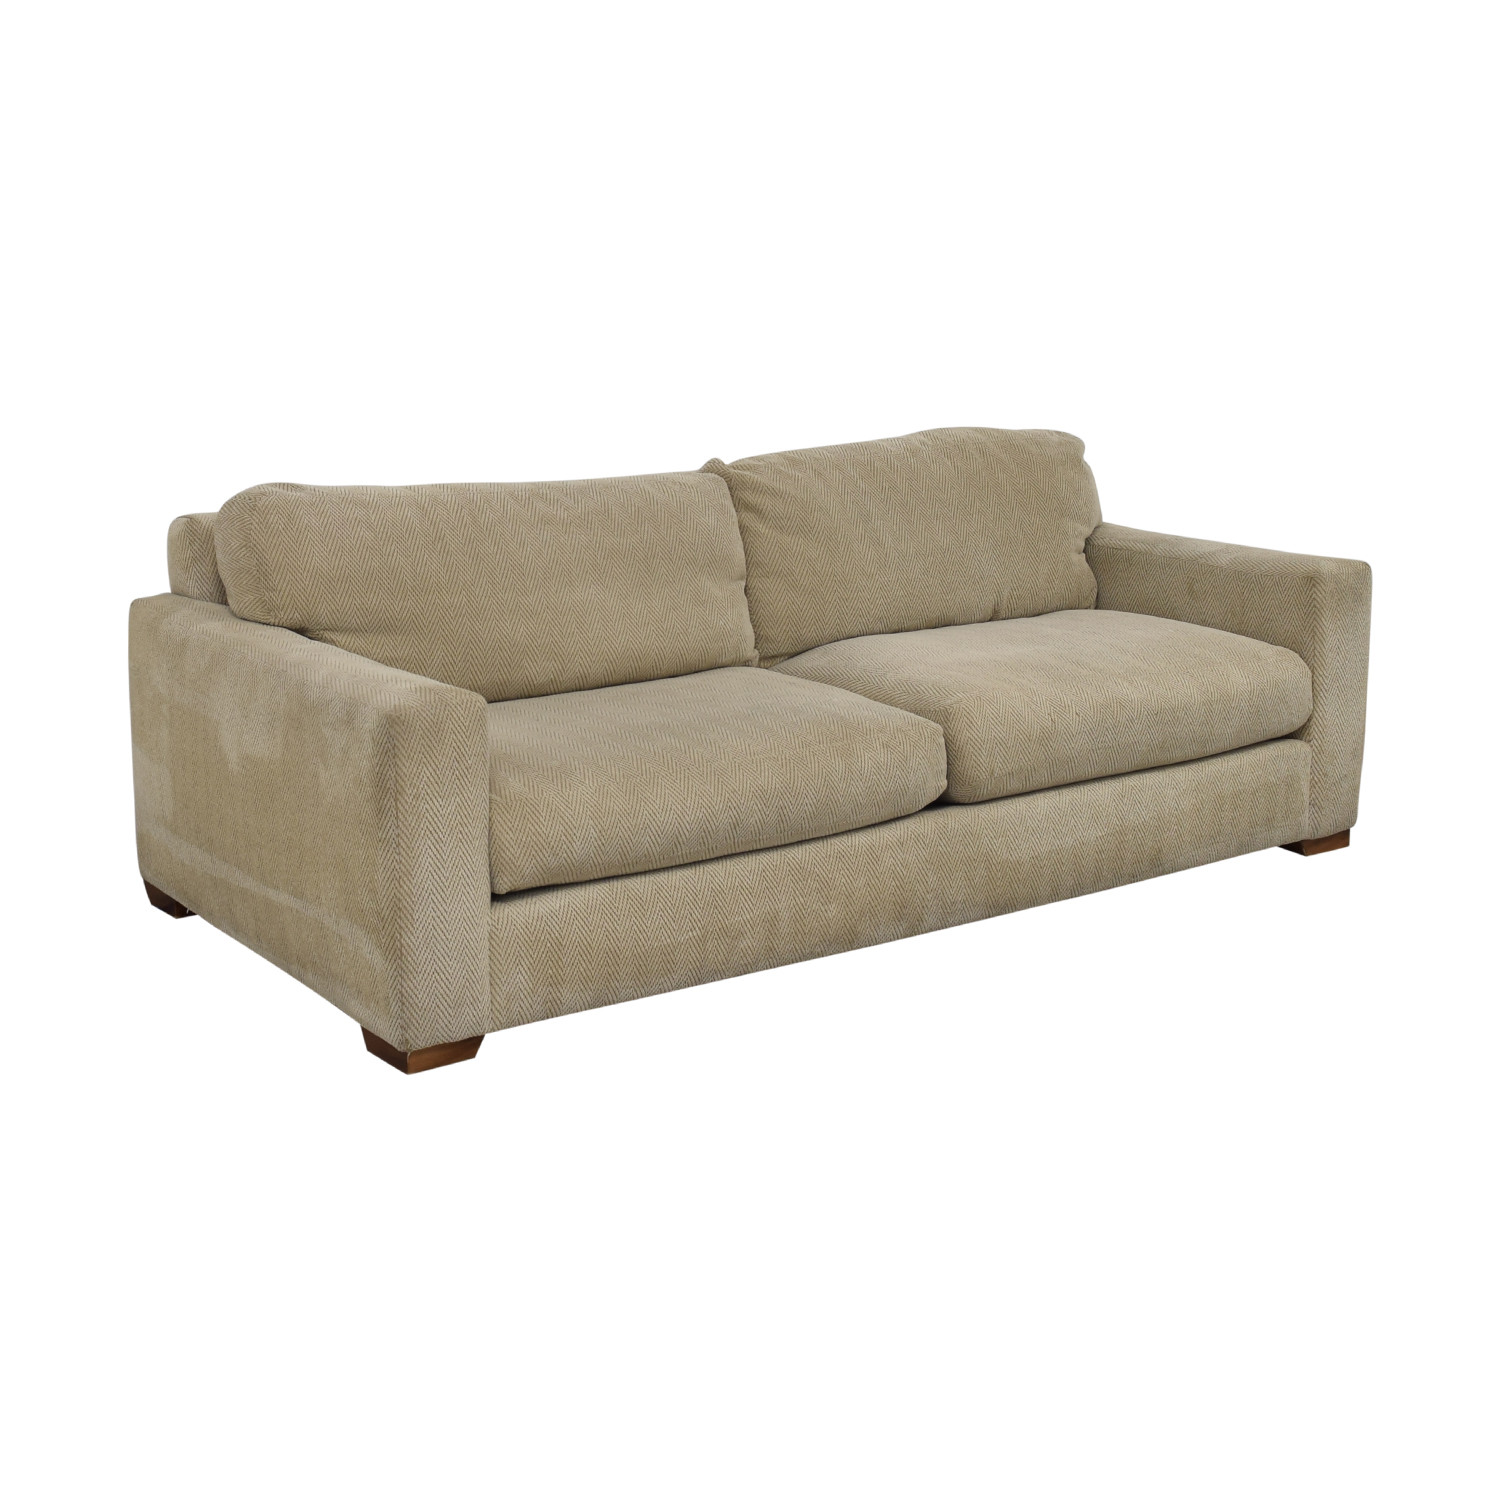 Rowe Furniture Rowe Furniture Dakota Two Cushion Sofa price